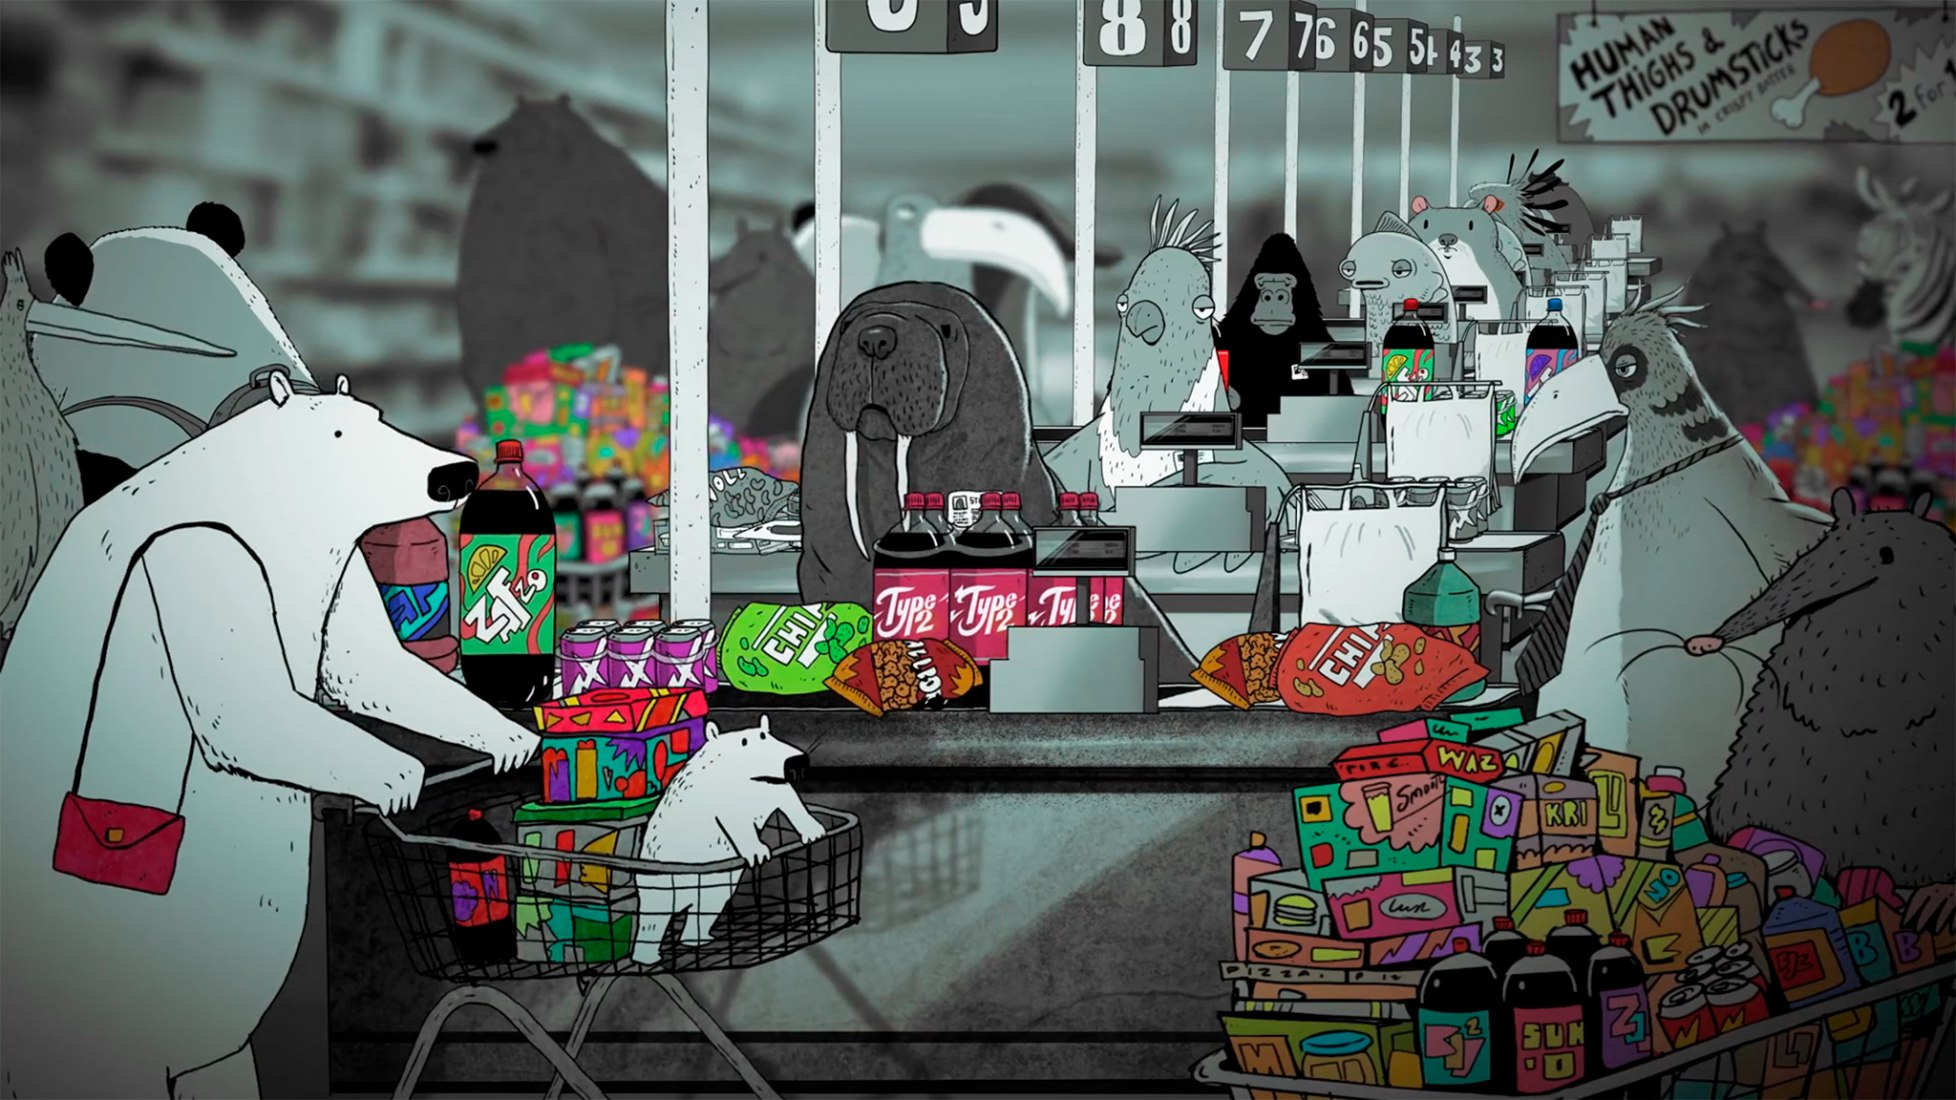 The Turning Point by Steve Cutts